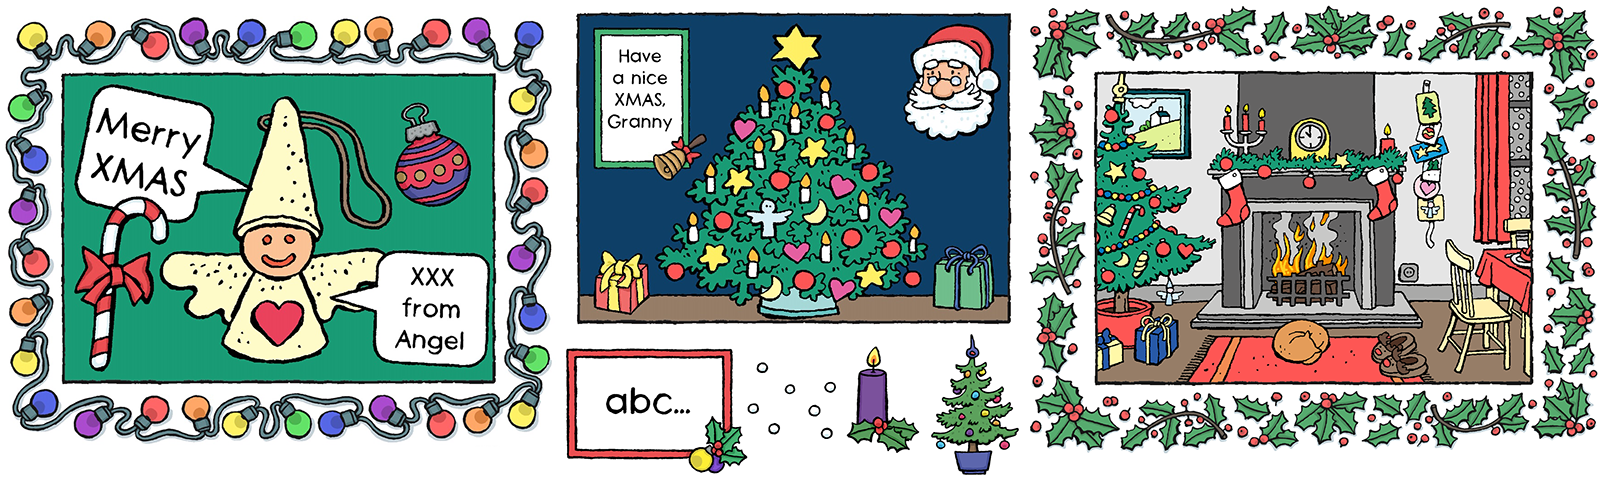 Have a great Christmas with Colouring book kids & toddlers